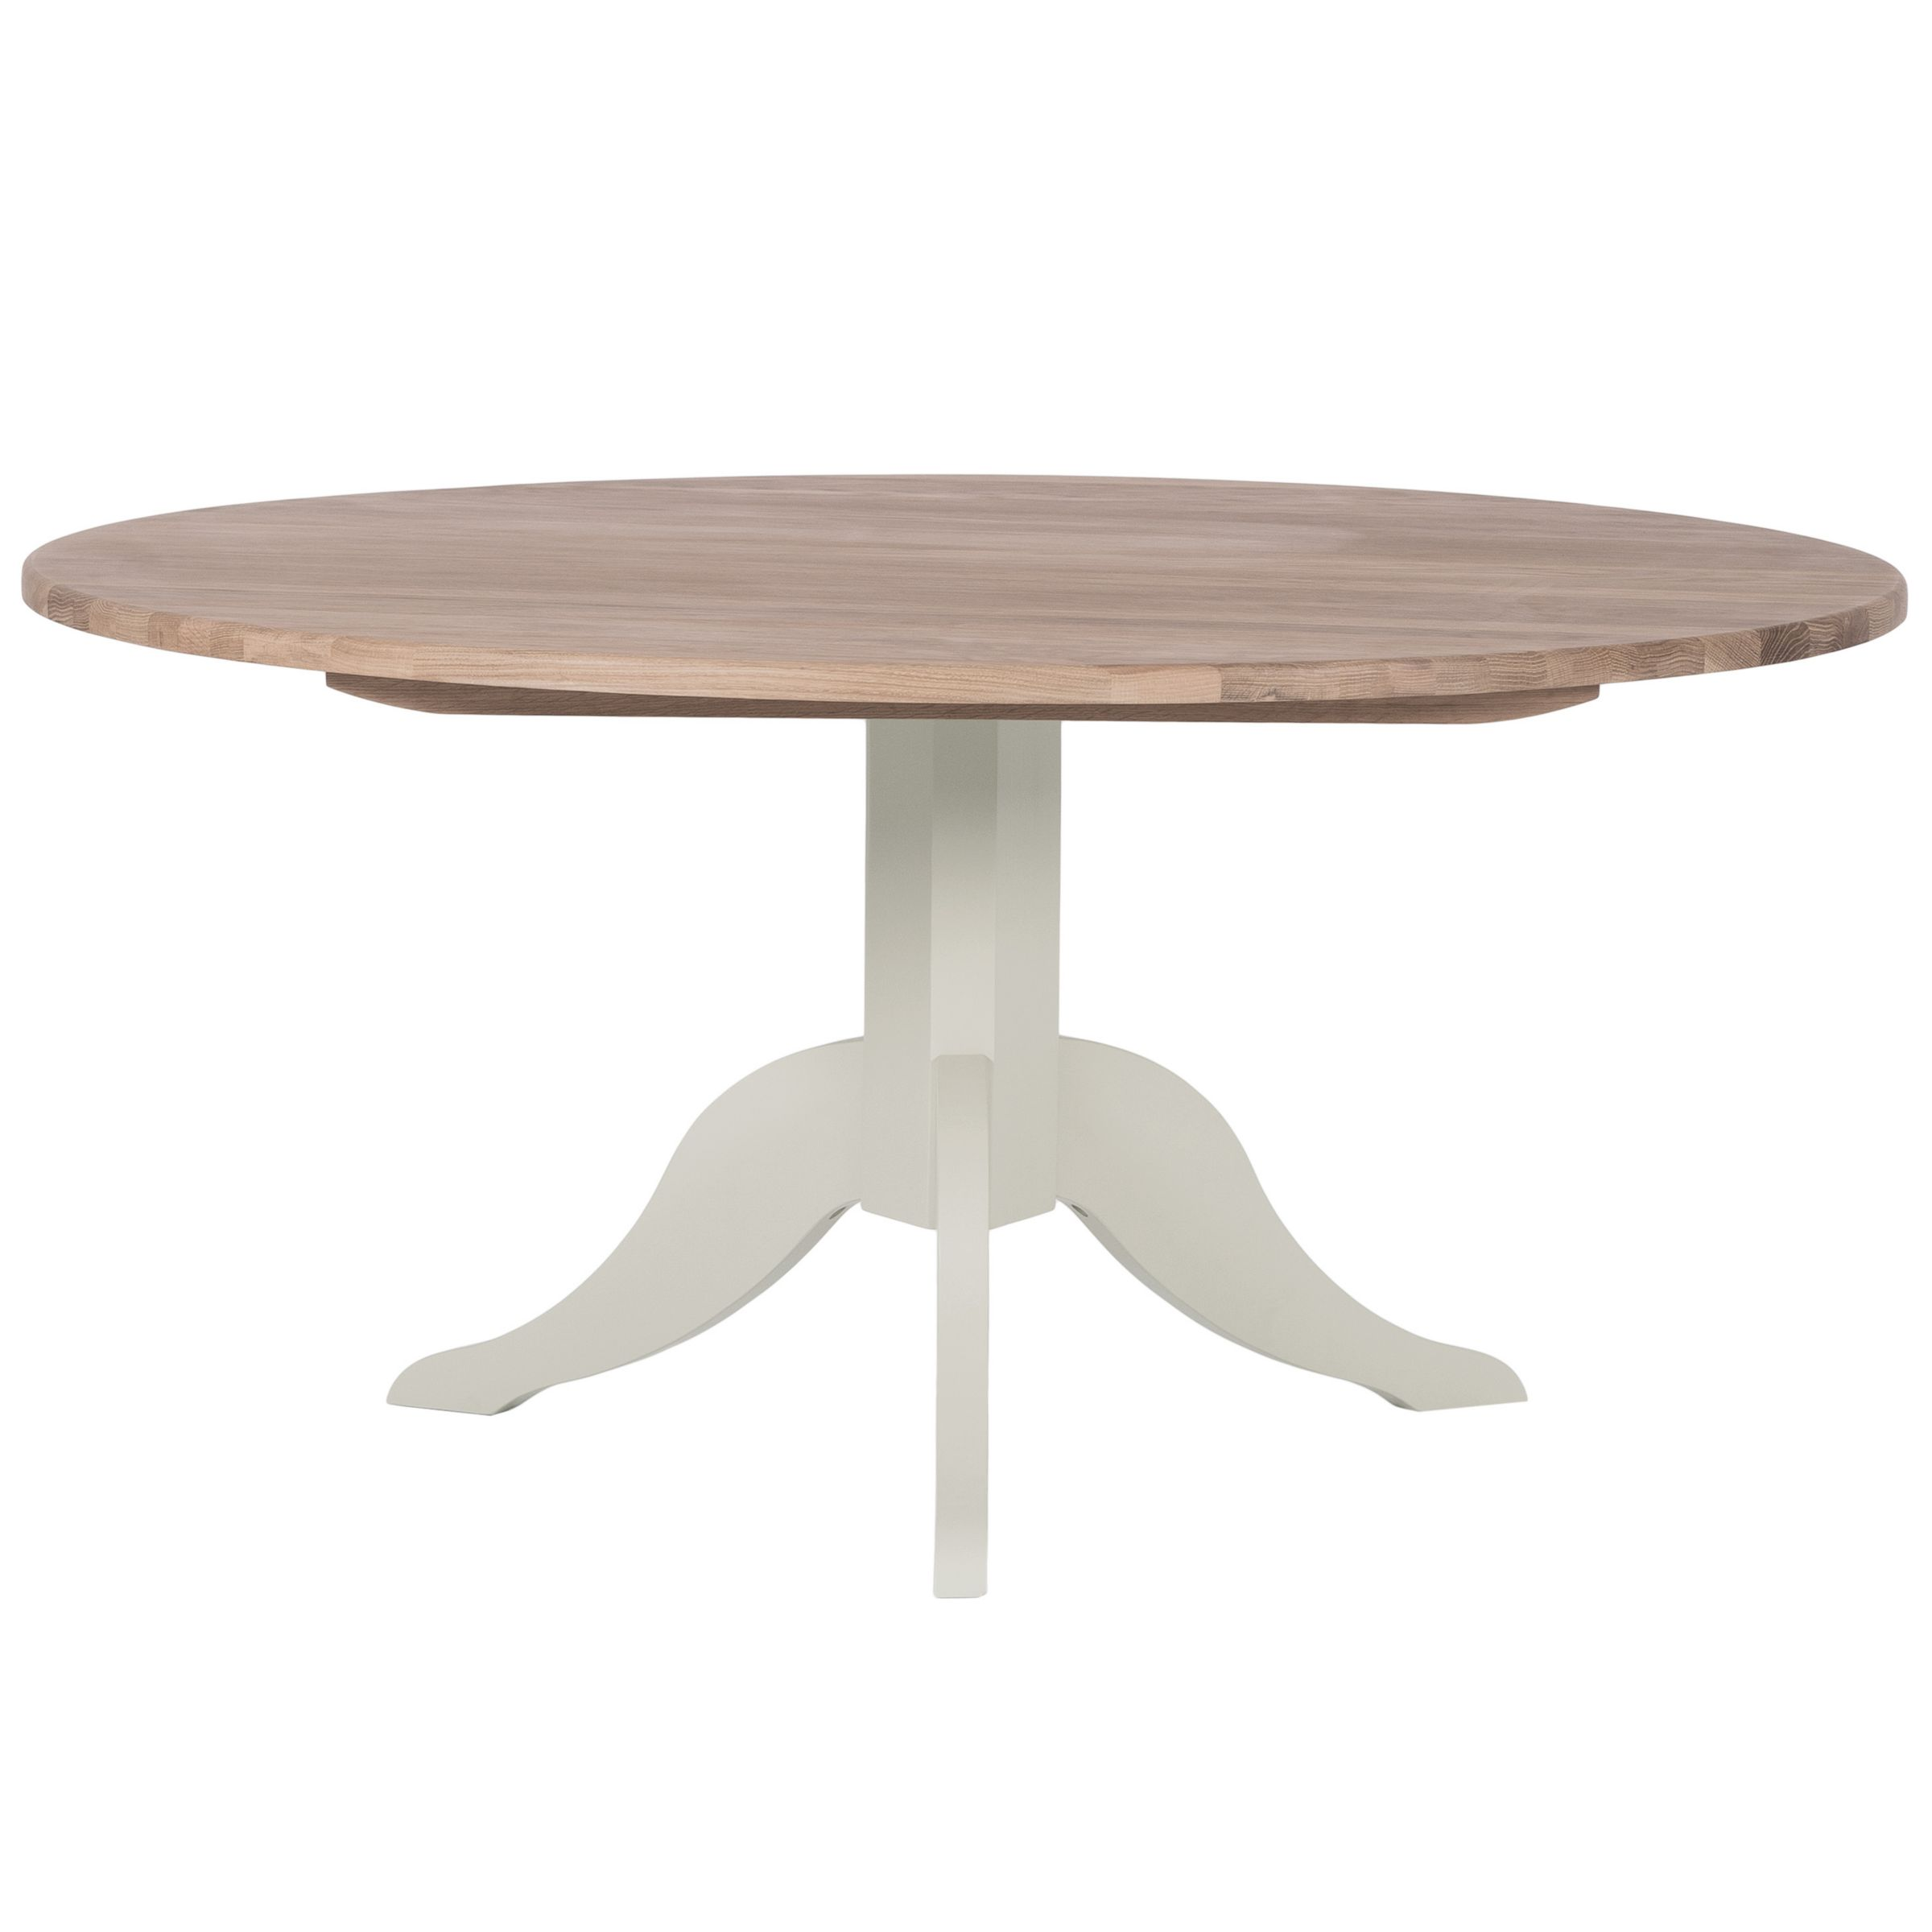 Neptune Chichester cm Round Dining Table Shingle